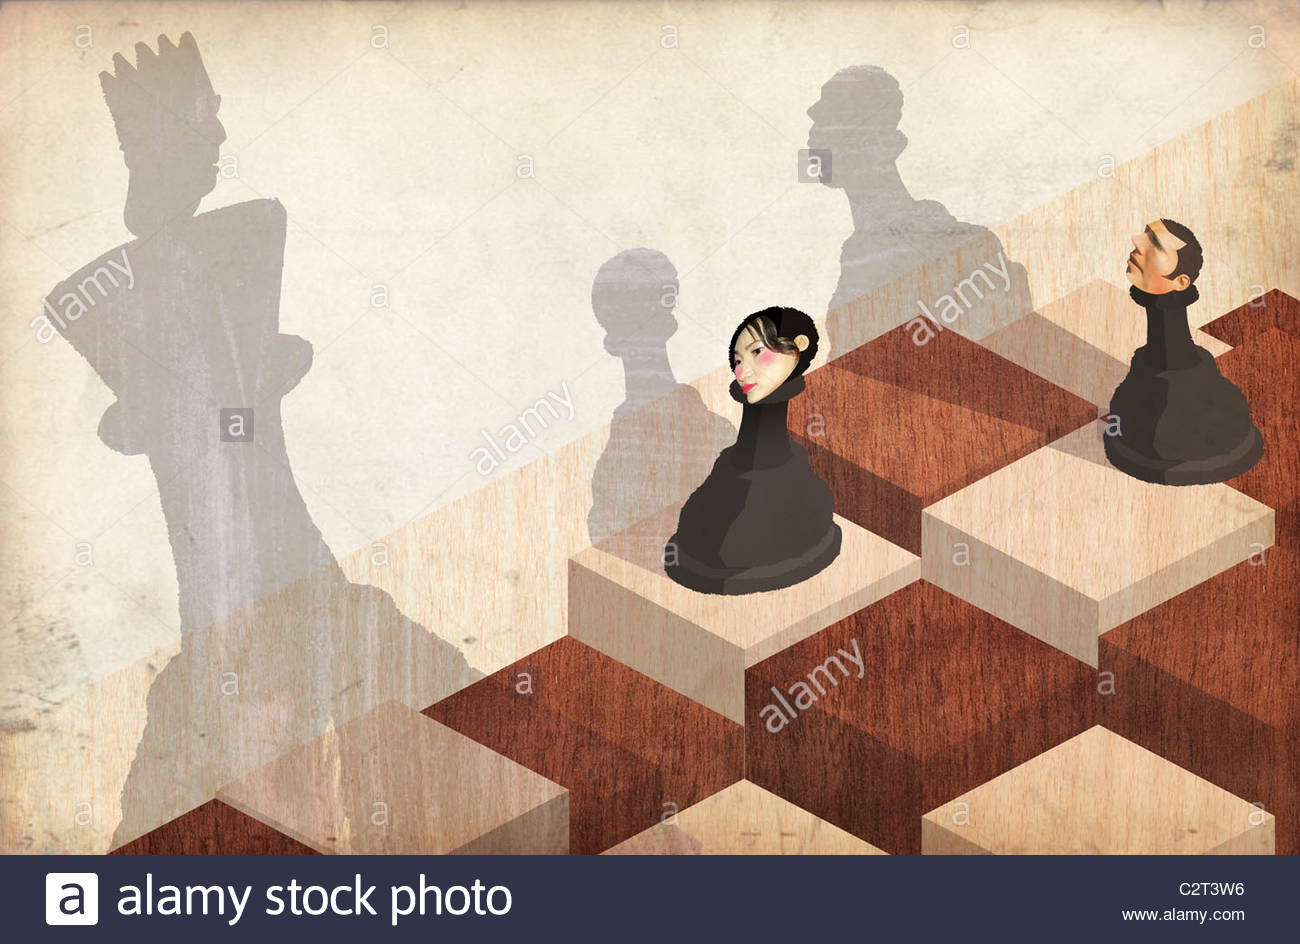 Chess pieces with man and woman's heads - Stock Image